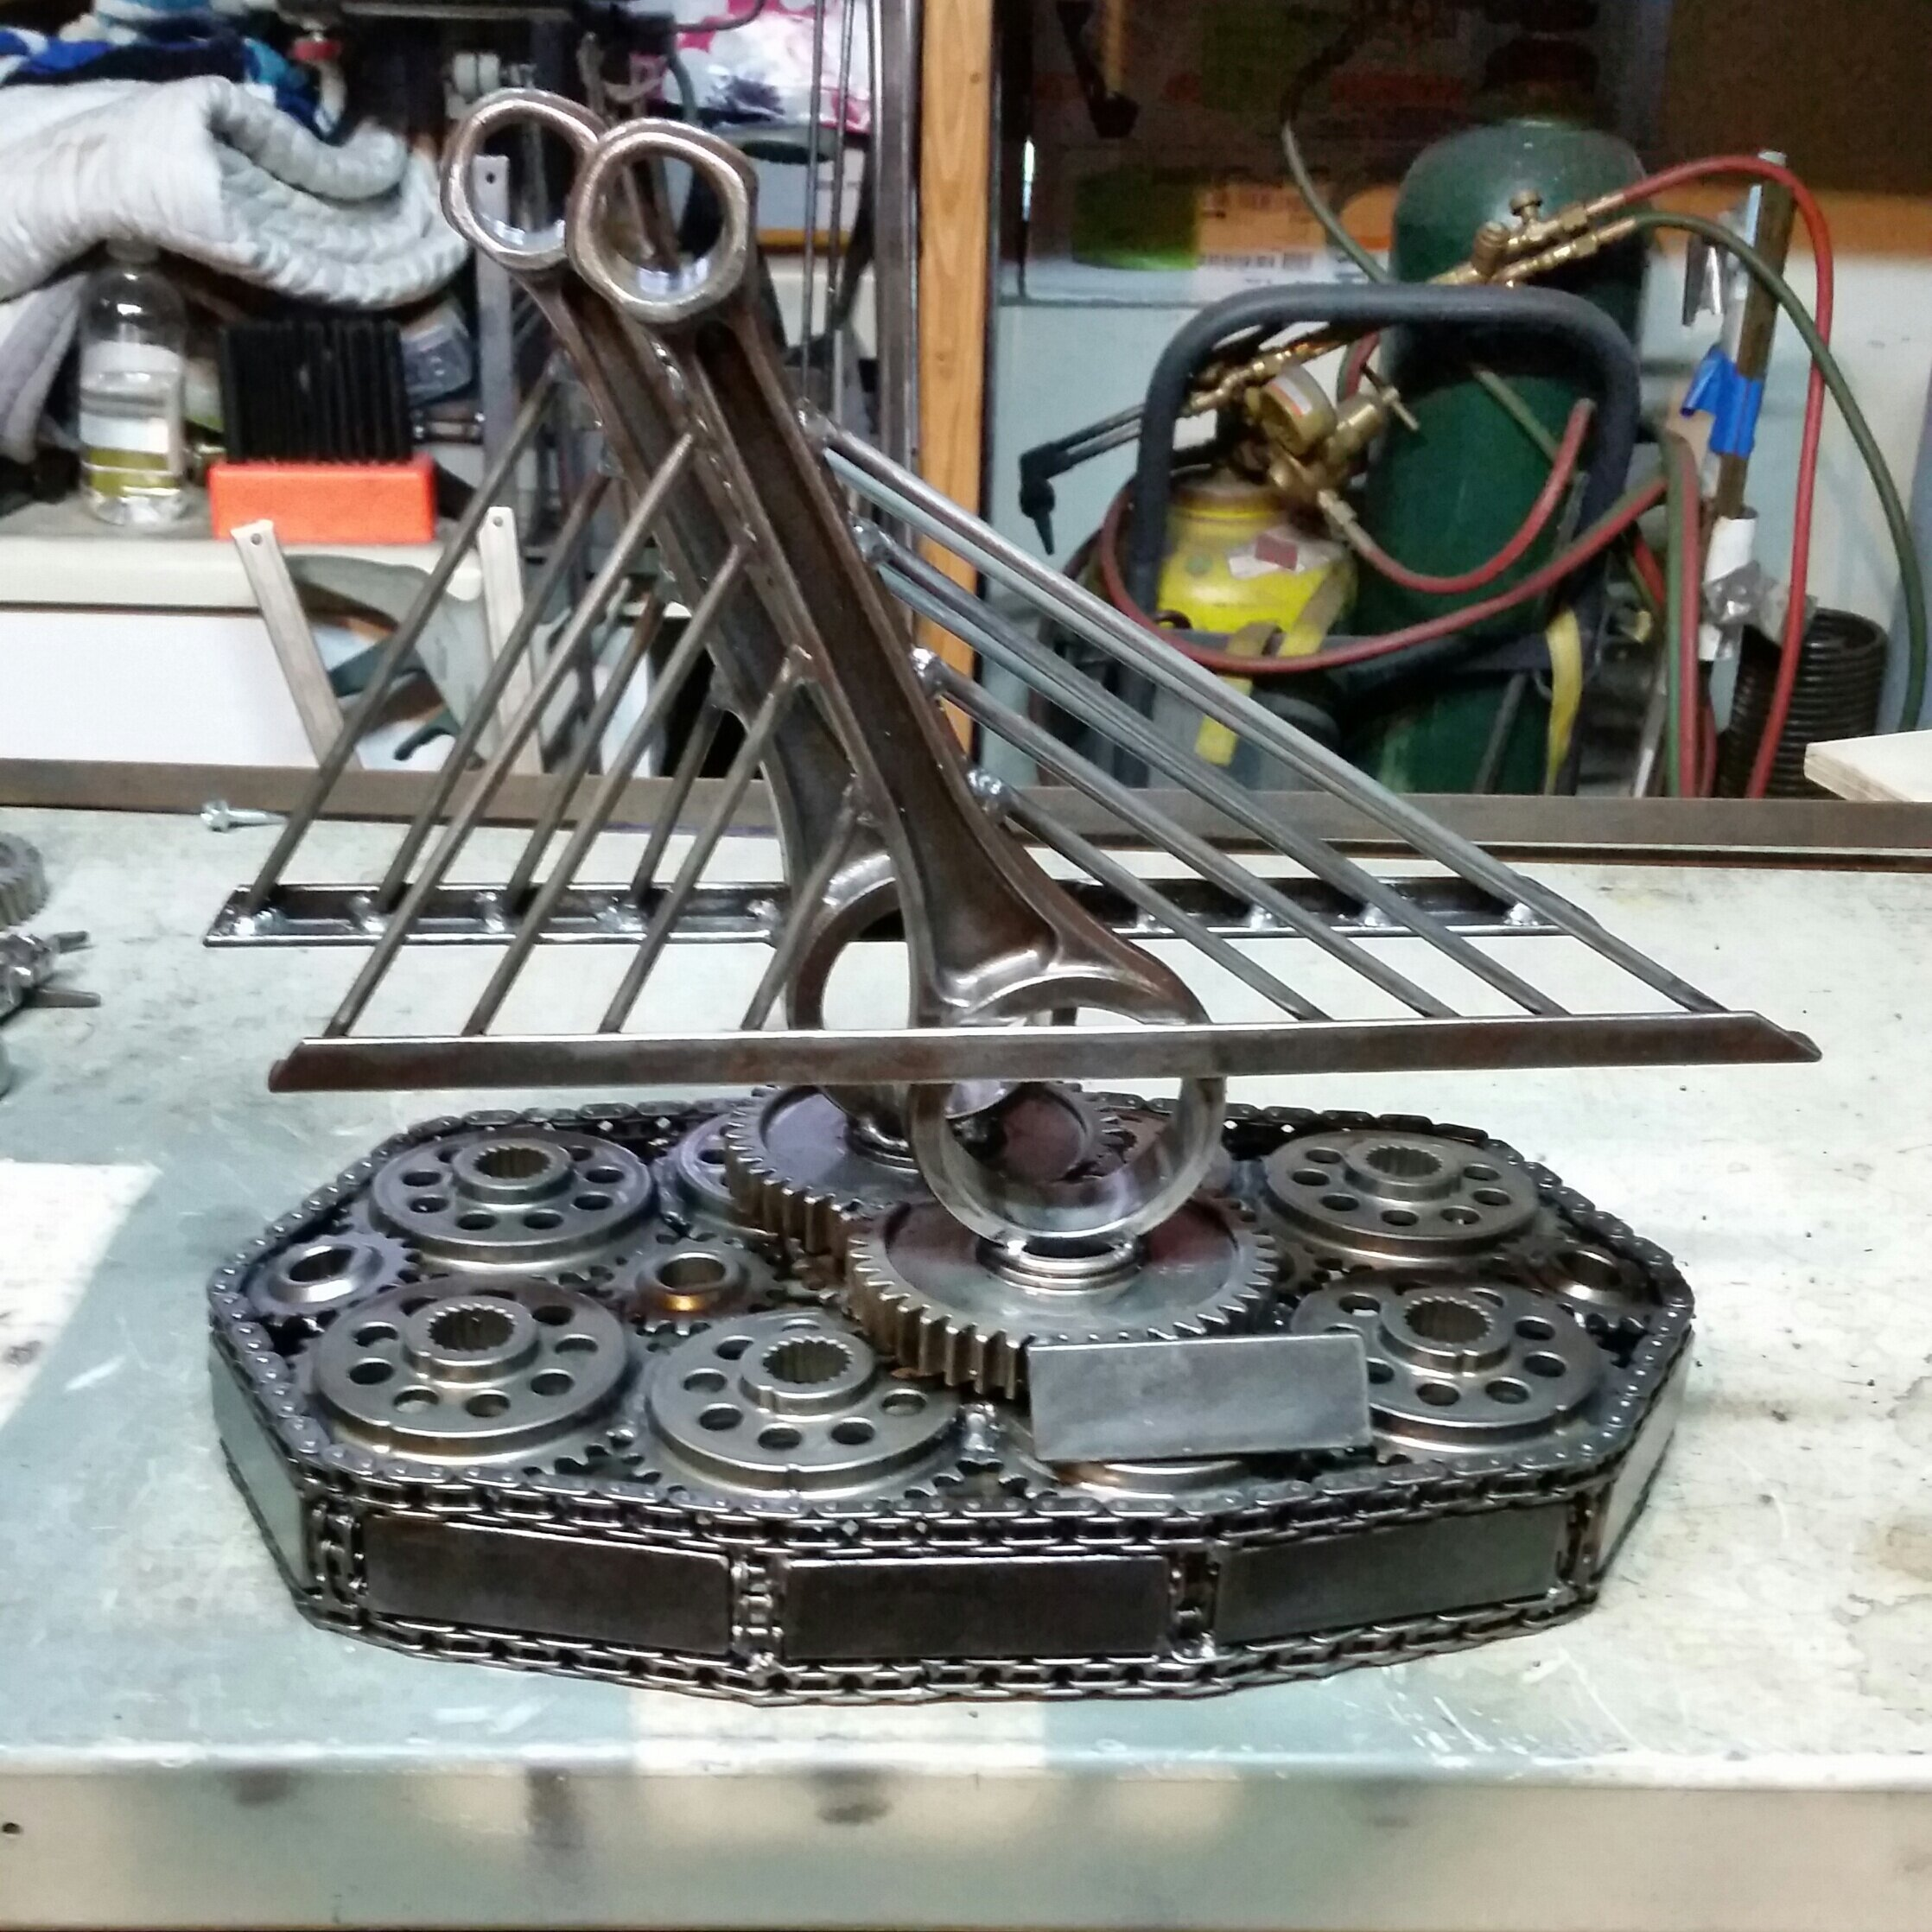 Adam Buth, a local artist, creates custom sculptures, mementos, and trophies from motorcycle parts.